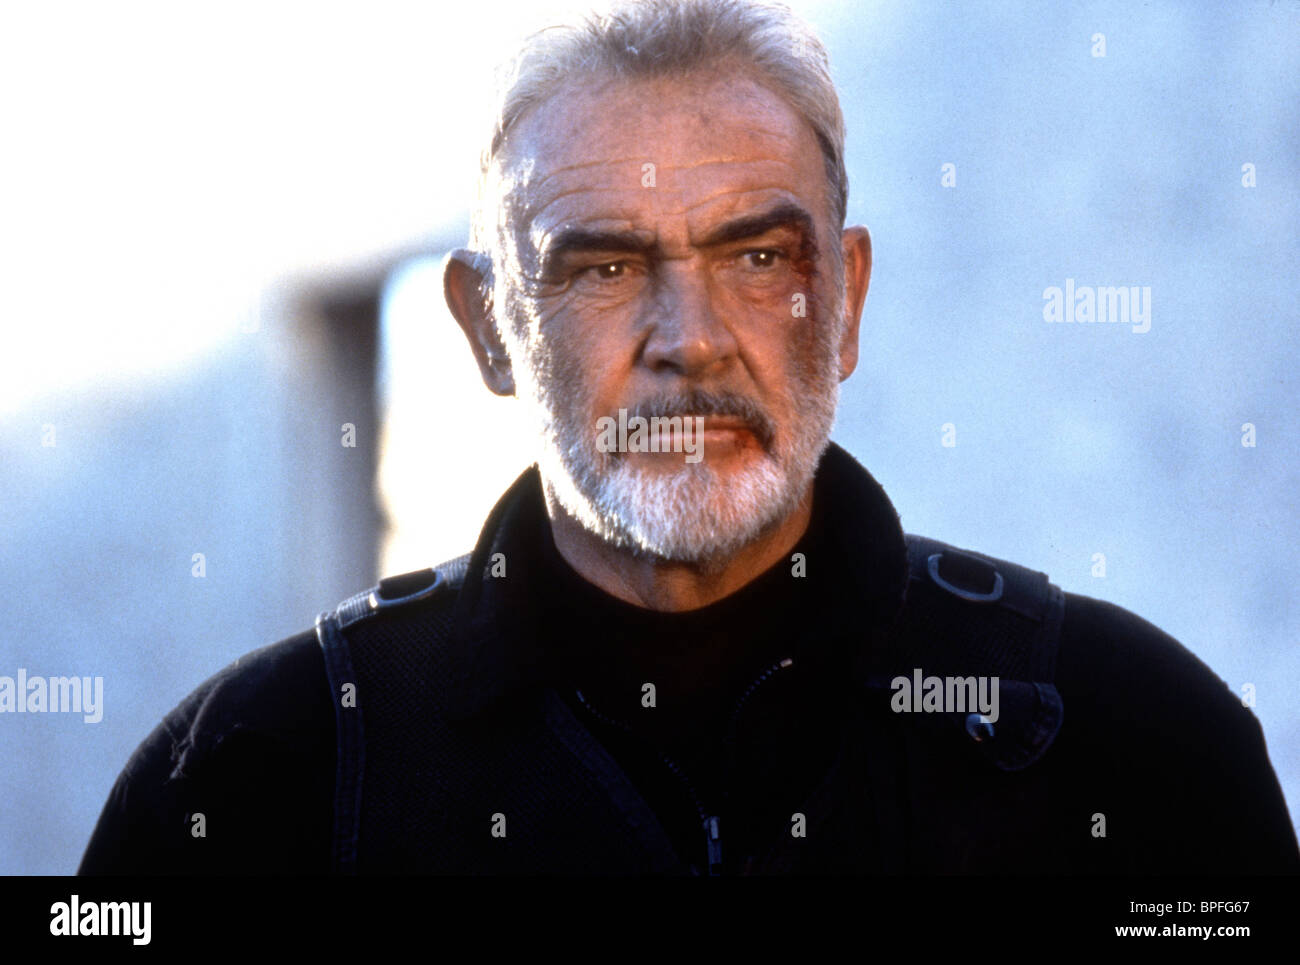 Sean Connery The Rock 1996 Stock Photo Alamy